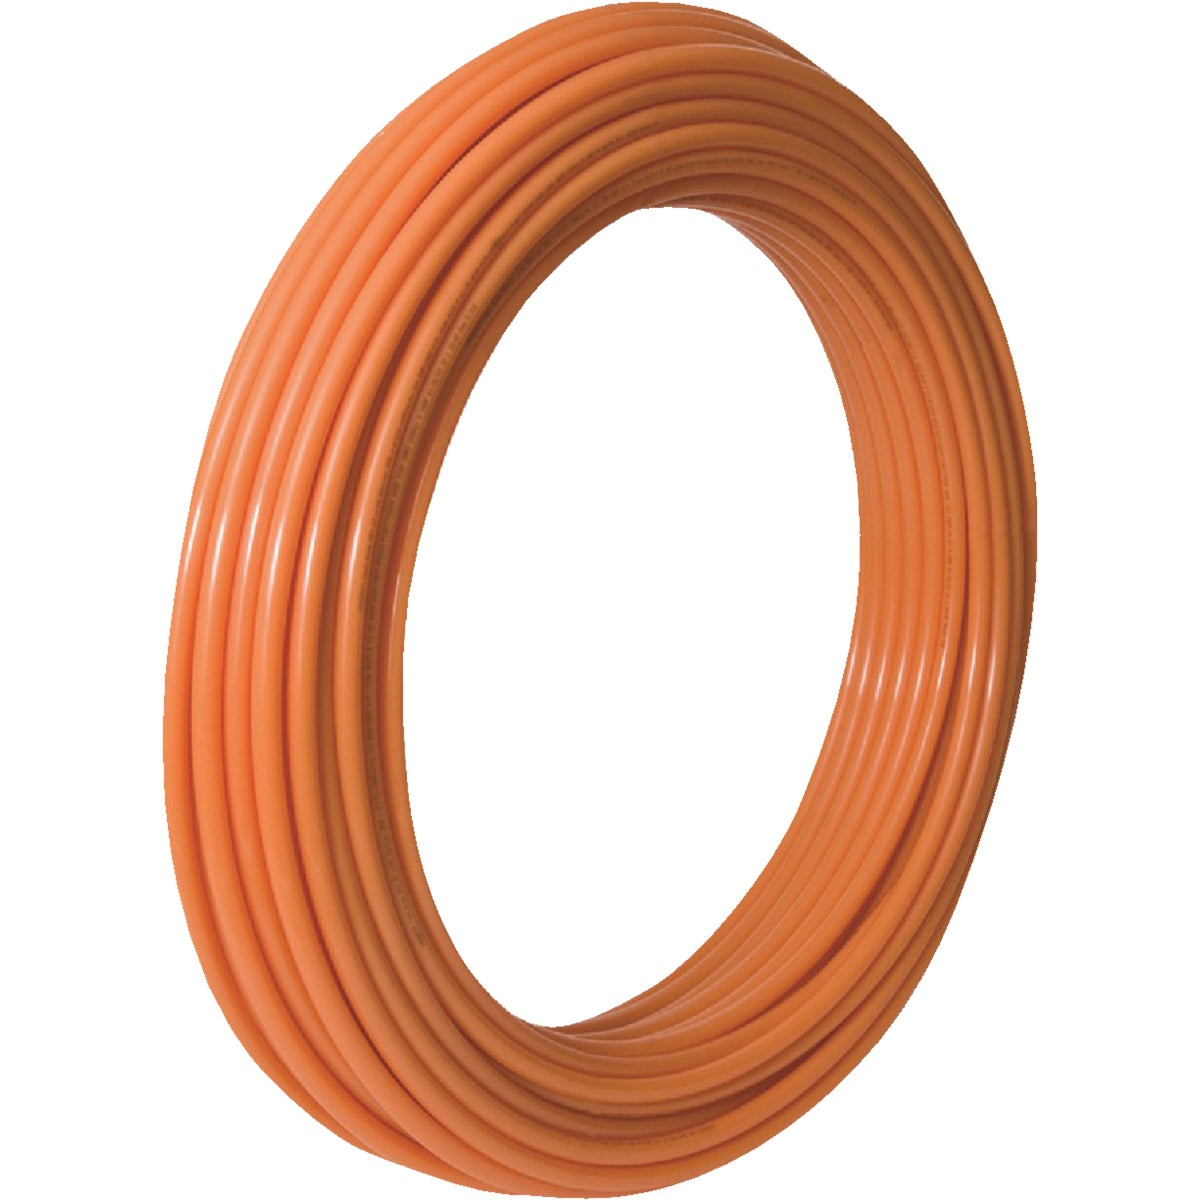 "3/4""X300' RADIANT TUBING - PH-34-300 by Watts Regulator Co"